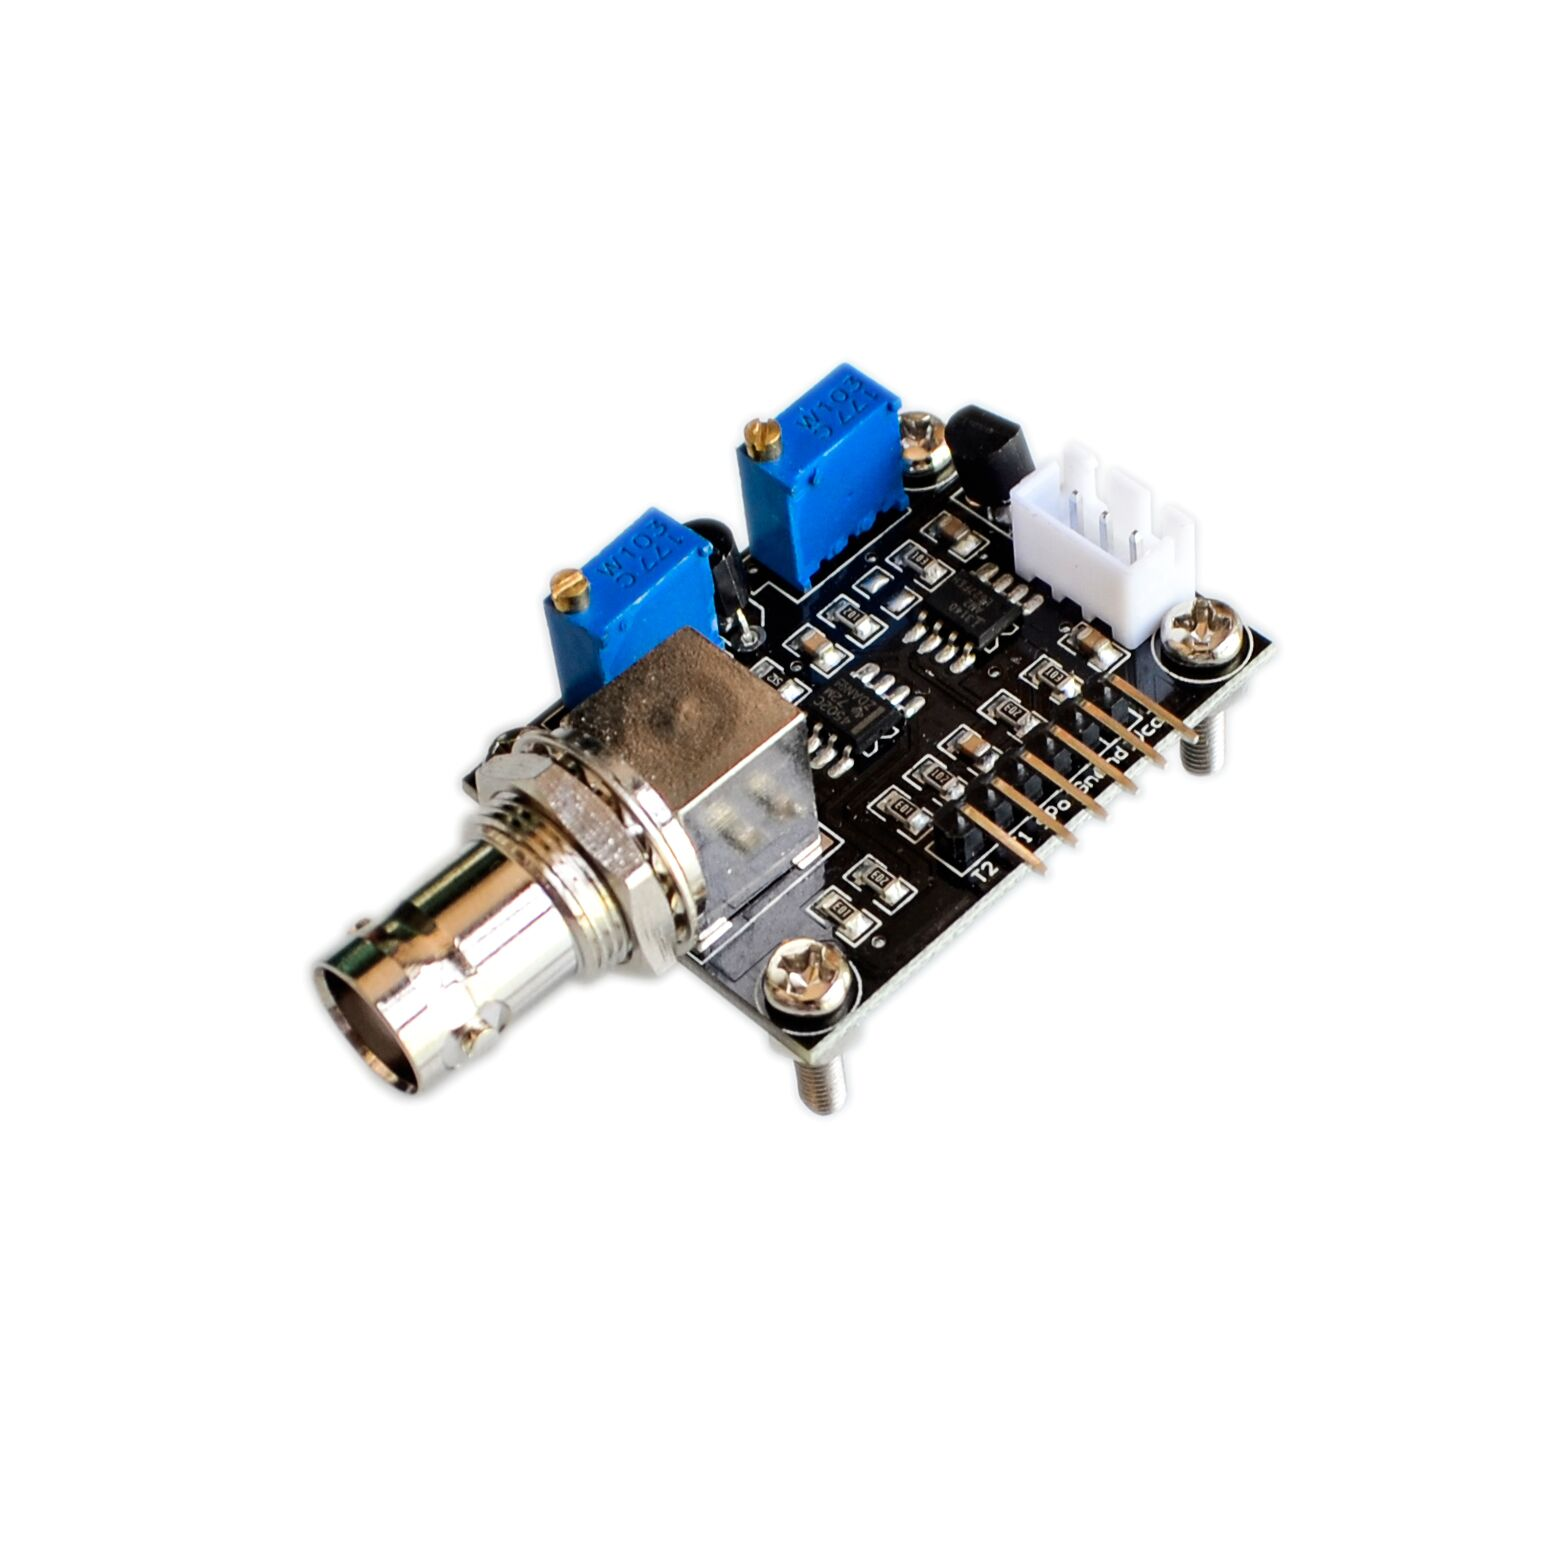 <font><b>PH</b></font> Value Detection Detect Regulator Sensor <font><b>Module</b></font> Monitoring Control Meter Tester <font><b>PH</b></font> 0-14 For Arduino image